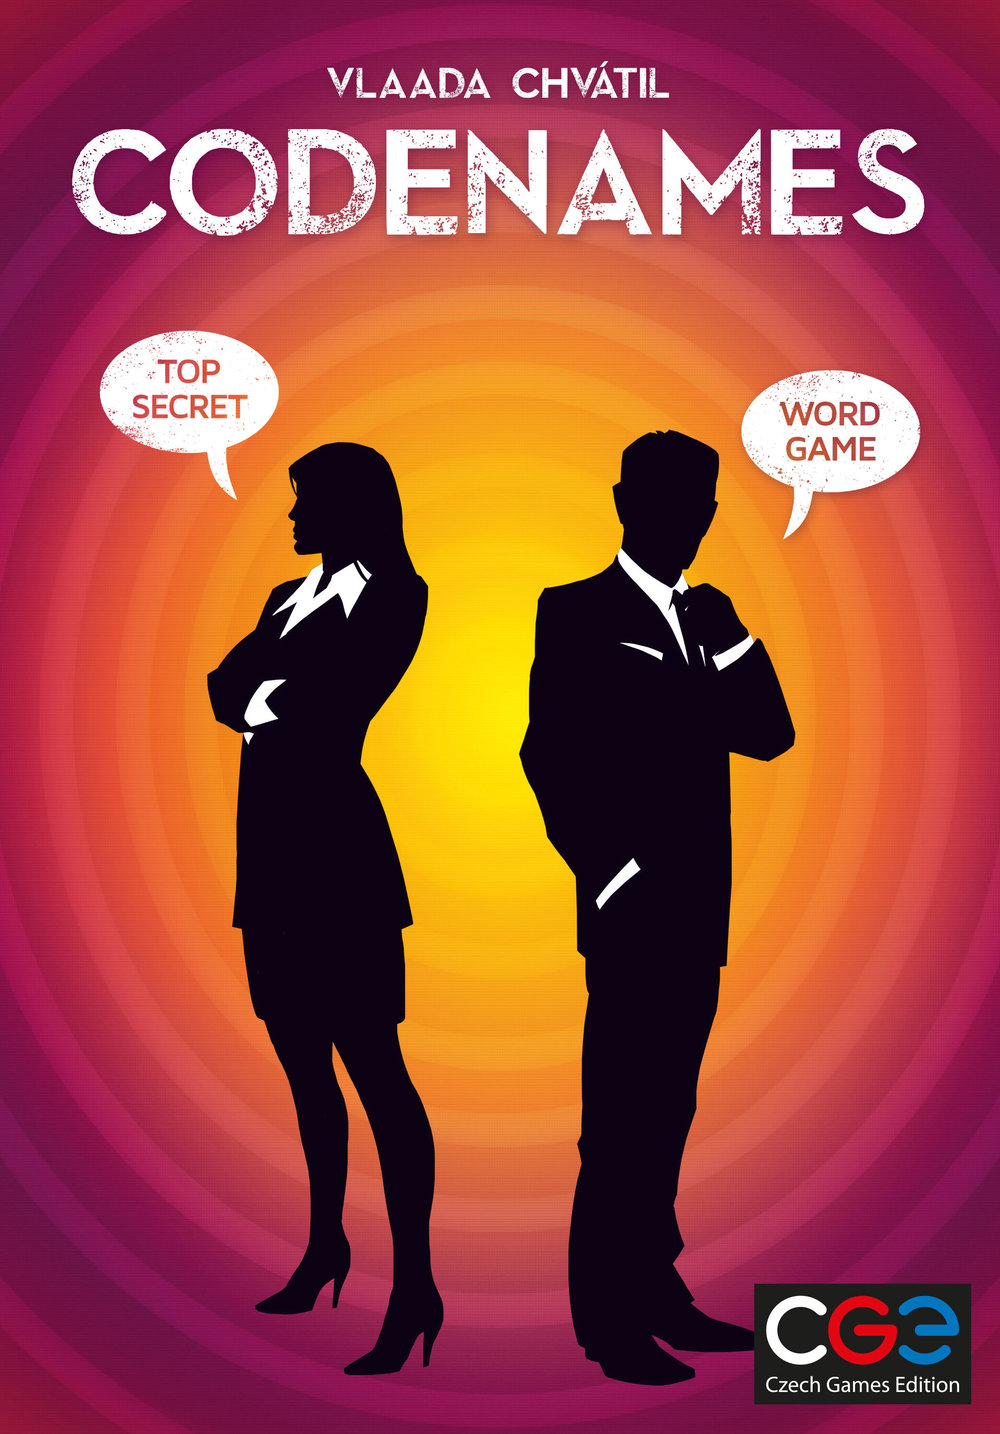 Codenames  is a popular storytelling game based on social puzzle-solving and deduction.